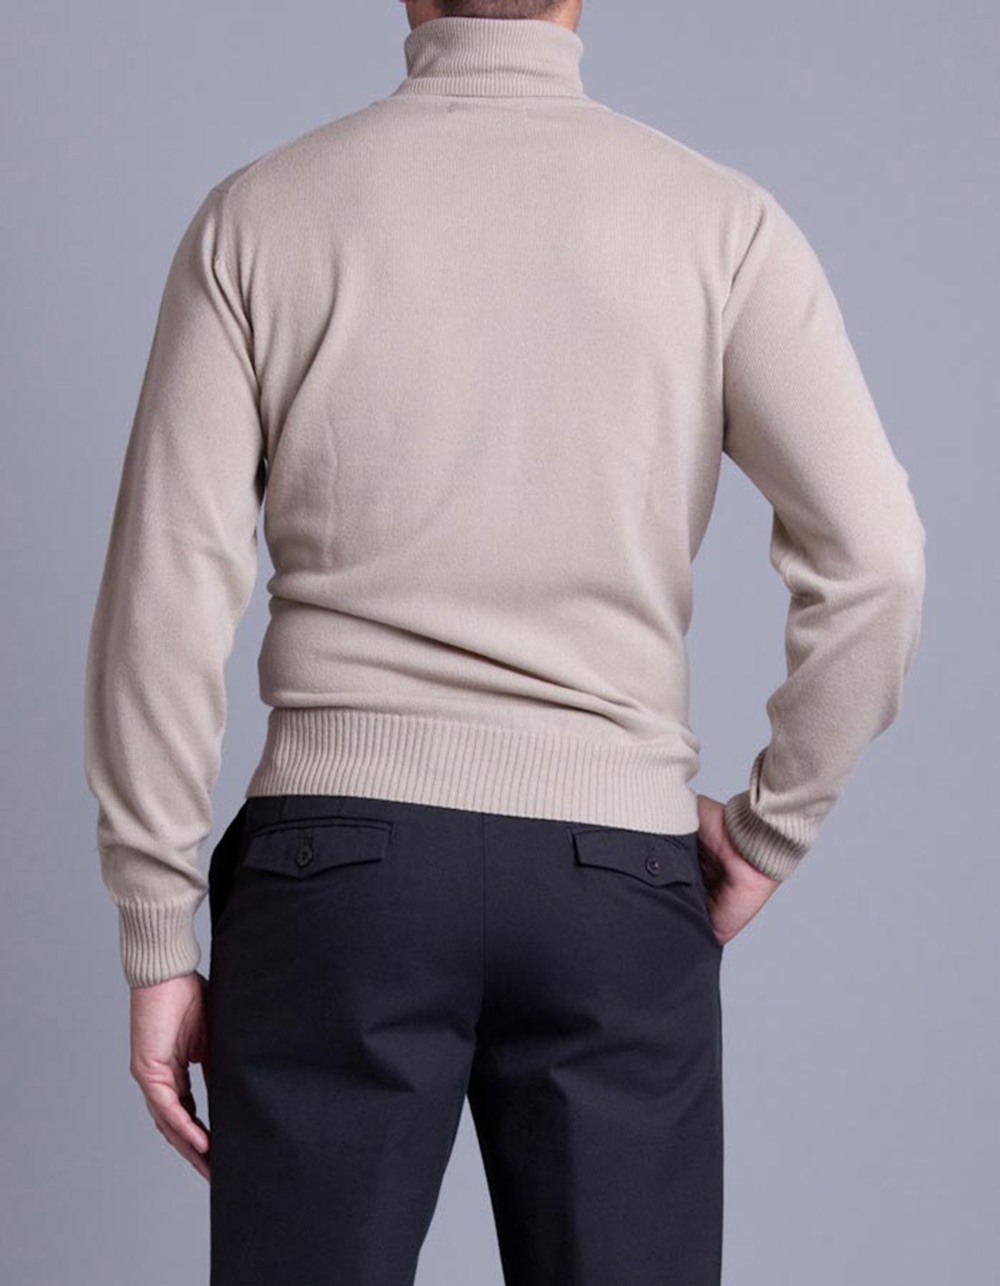 Beige turtleneck jersey - Backside